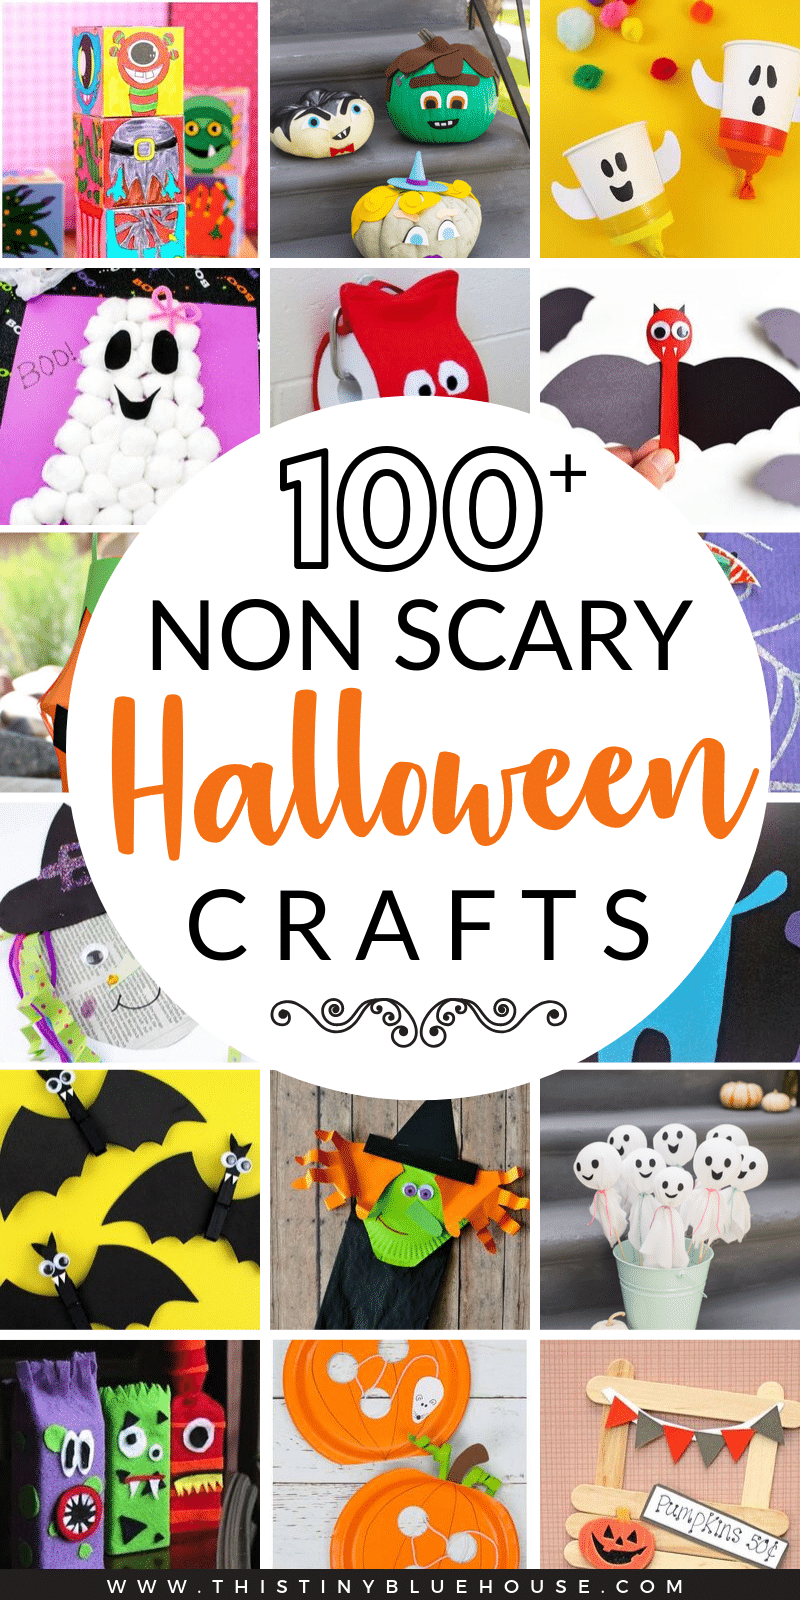 Here is the ultimate collection of over 100 best no scary Halloween crafts for kids. From cute pumpkins to monsters these crafts are perfect for even the youngest kiddos. #halloweencrafts #halloweencraftsforkids #nonscaryhalloweencrafts #halloweencraftsforpreschoolers #halloweencraftsfortoddlers #pumpkincrafts #witchcrafts #batcrafts #ghostcrafts #monstercrafts #easyhalloweencrafts